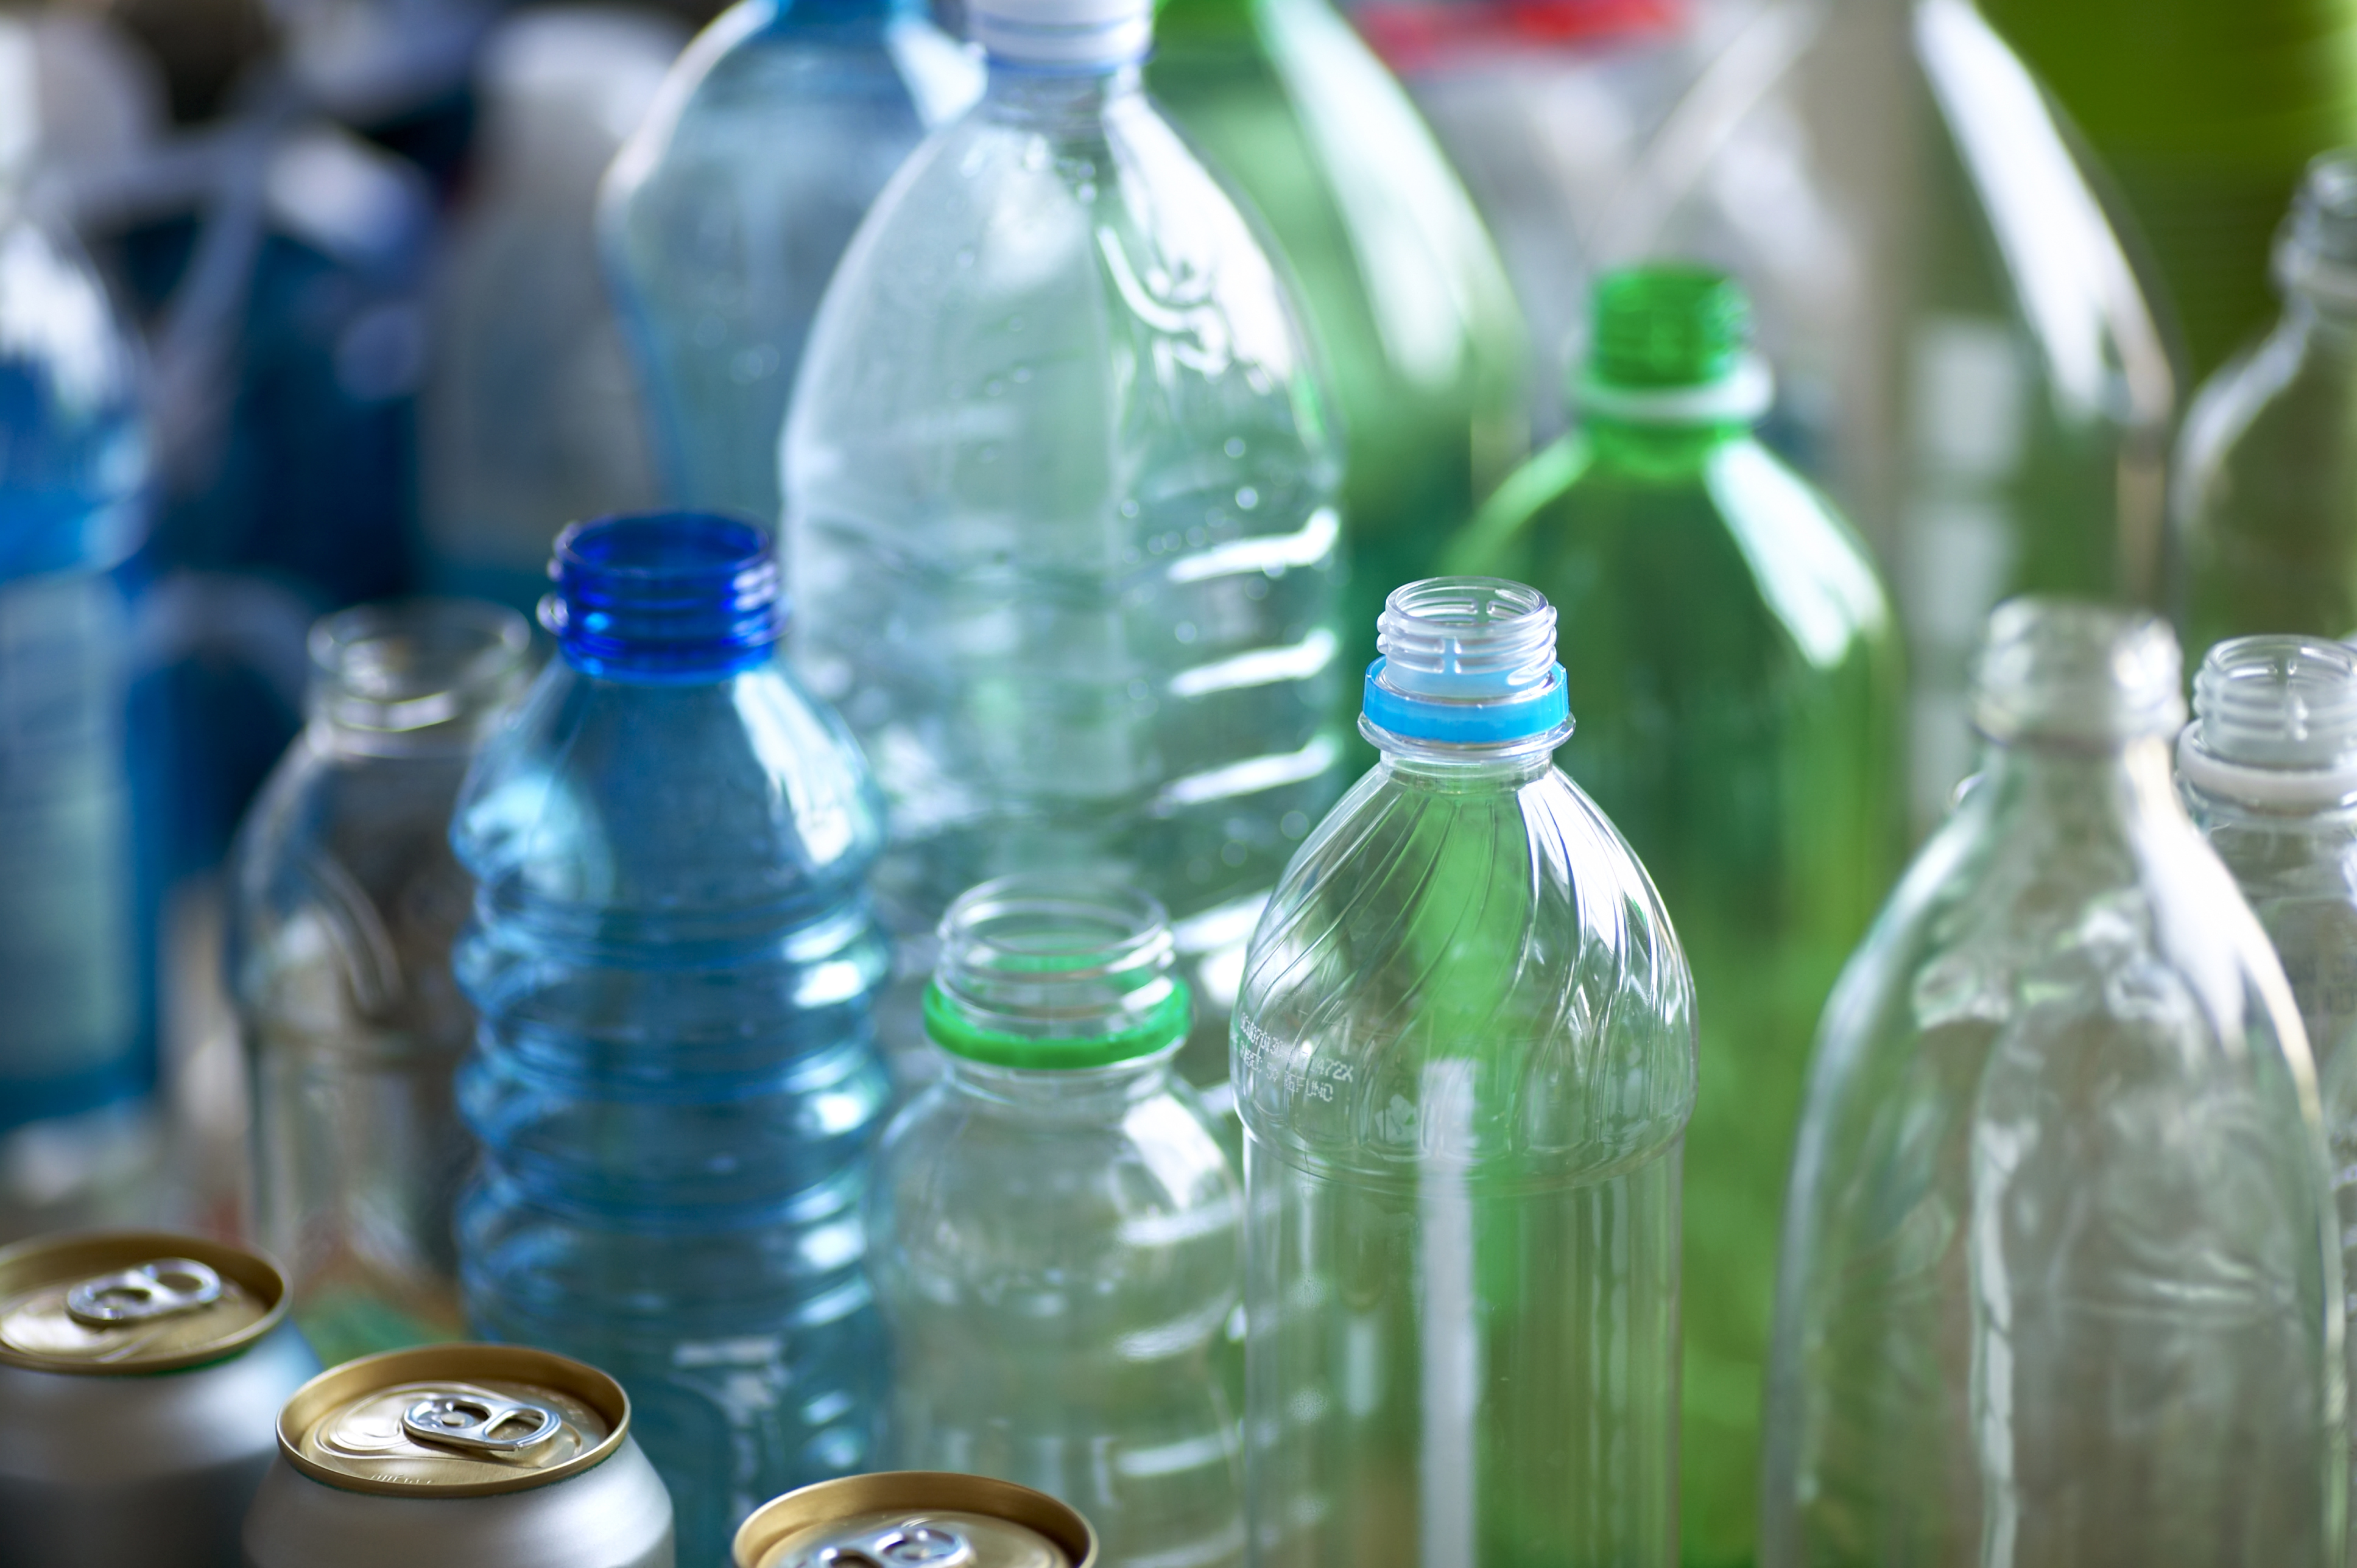 Bring your empties to VCS